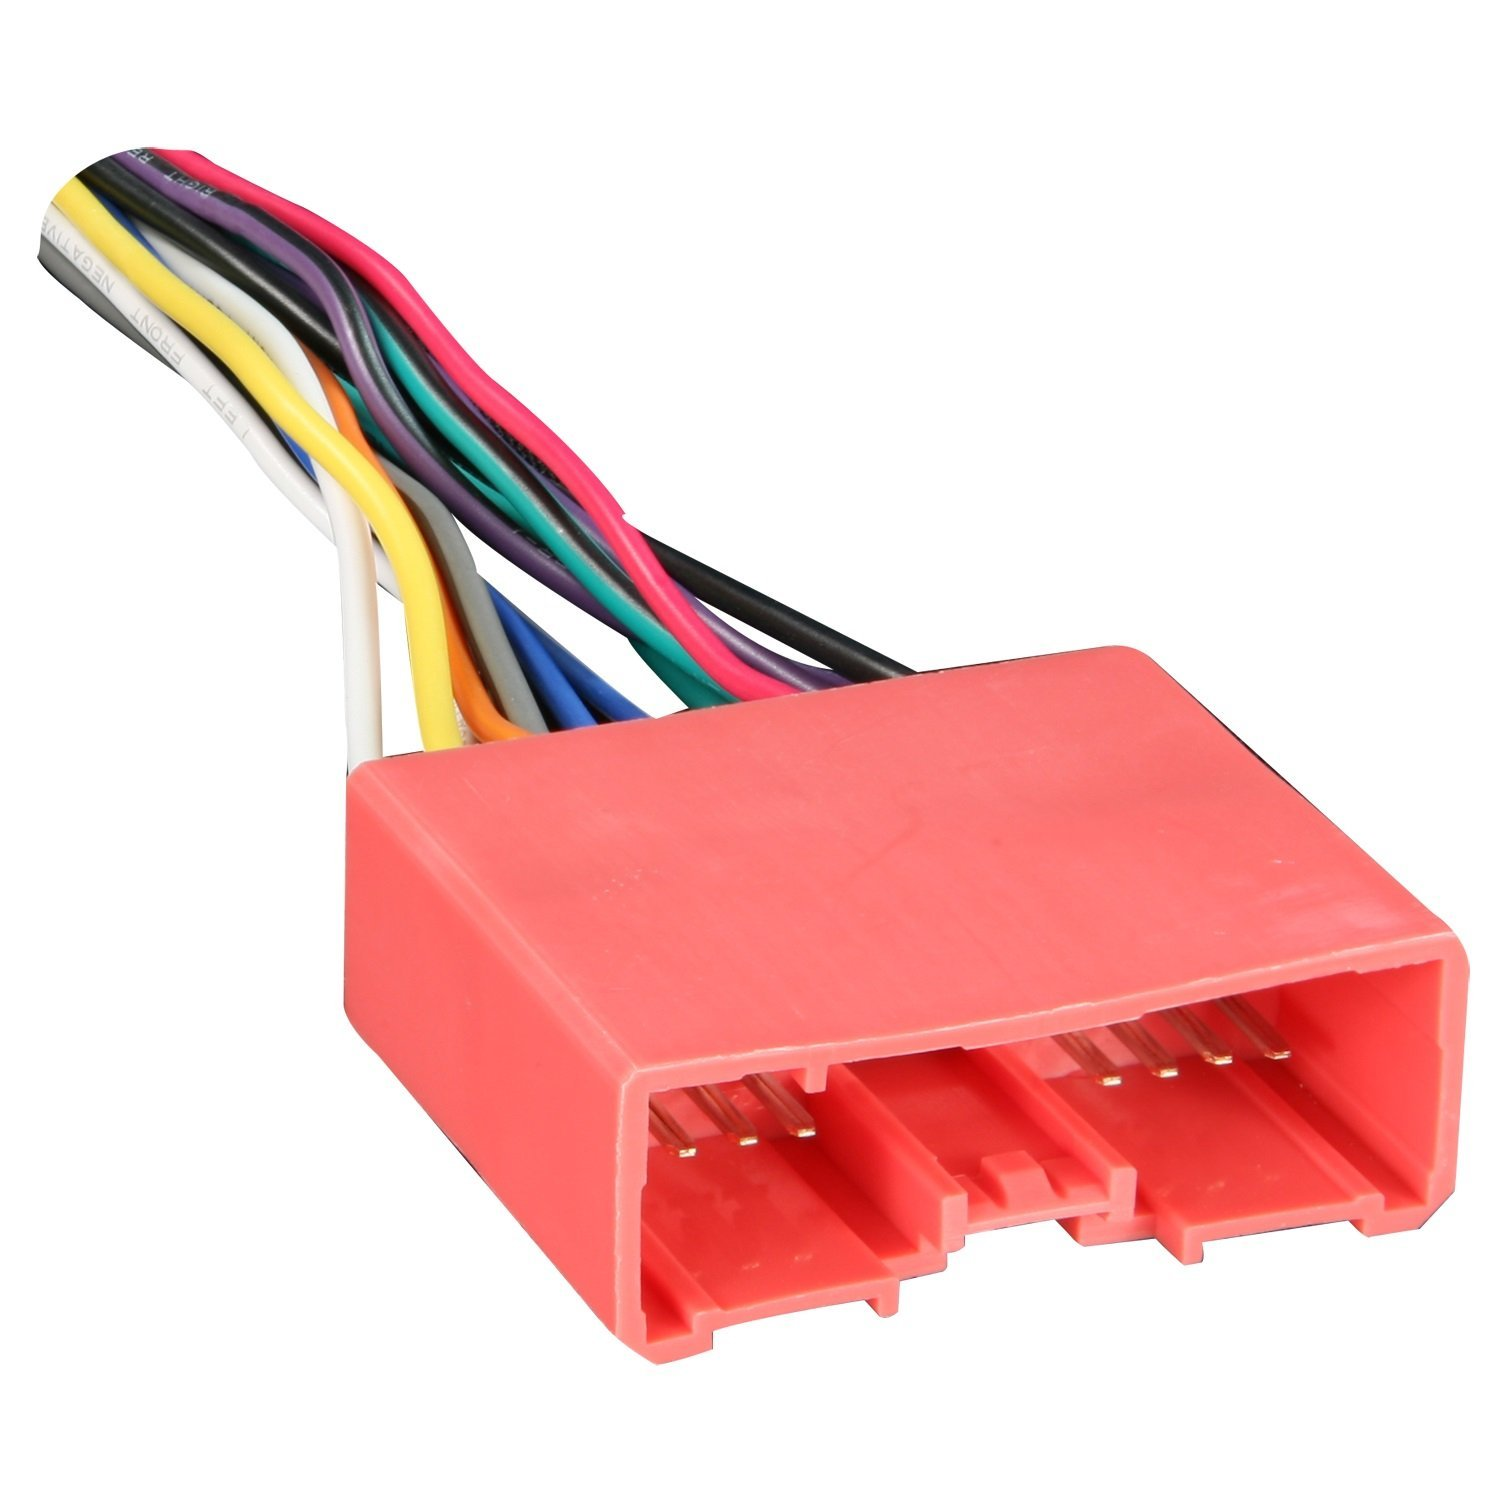 Electronics 70-7903 Wiring Harness for 2001-Up Mazda Vehicles, Plugs into  car harness By Metra - Walmart.com